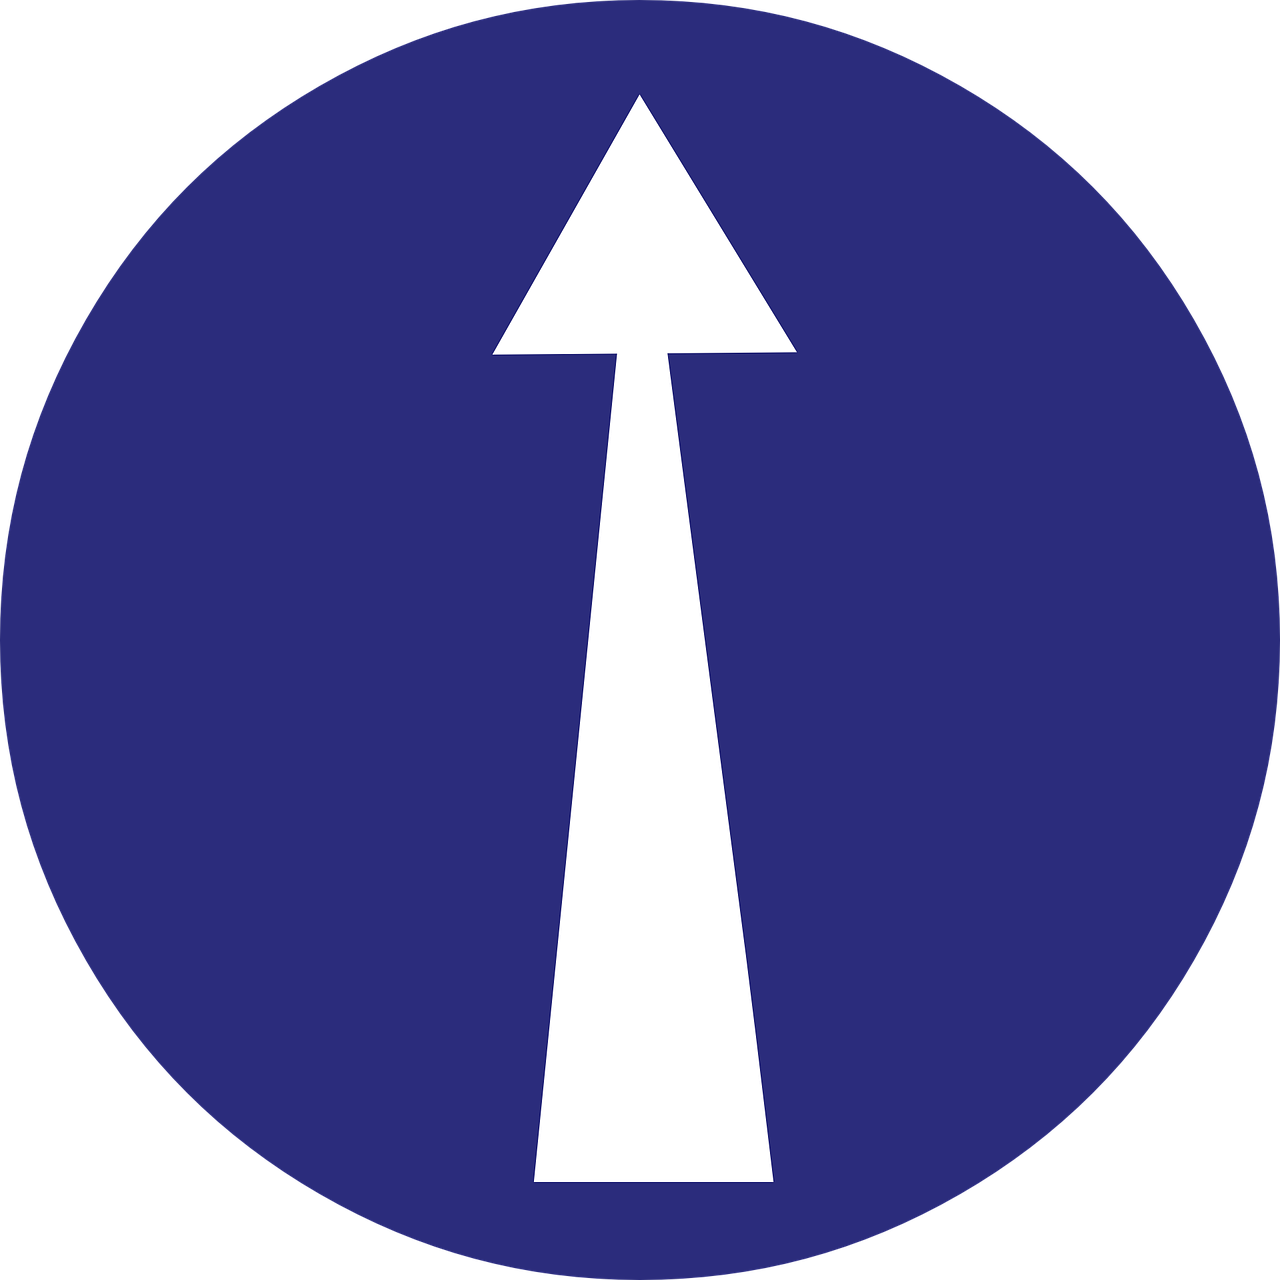 Straight Ahead Sign Png